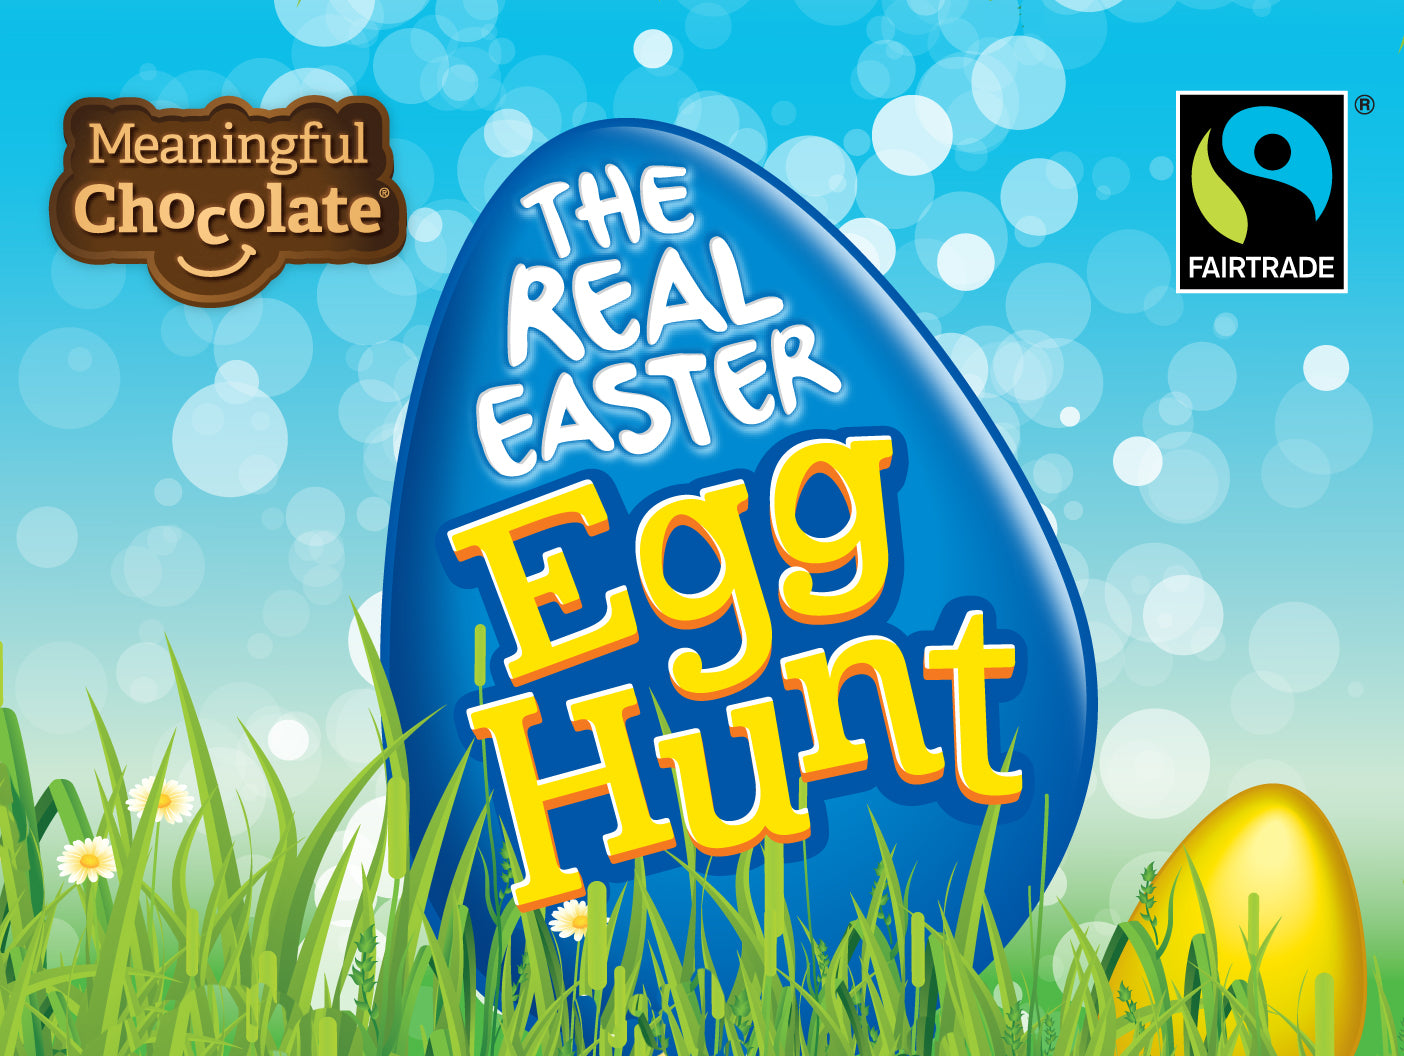 Run your own Real Easter Egg hunt